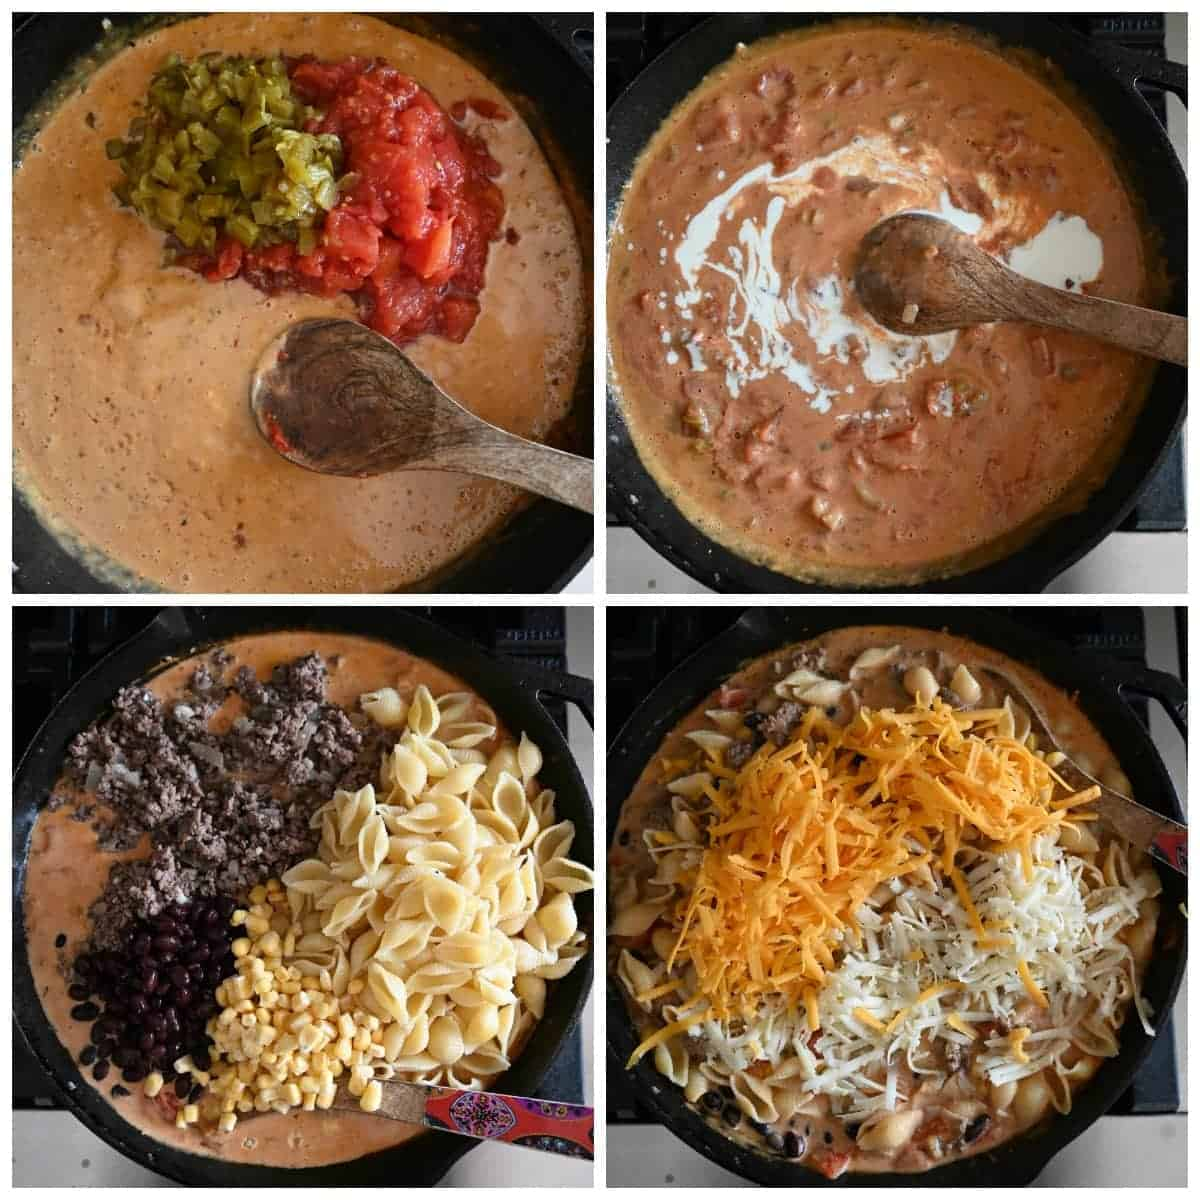 Four process photos. First one, green chilis and diced tomatoes added to the skillet. Third one, heavy whipping cream whisked in to the mixture. Third one, cooked pasta, browned ground beef and cilantro being mixed in. Fourth one, cheese being mixed in.